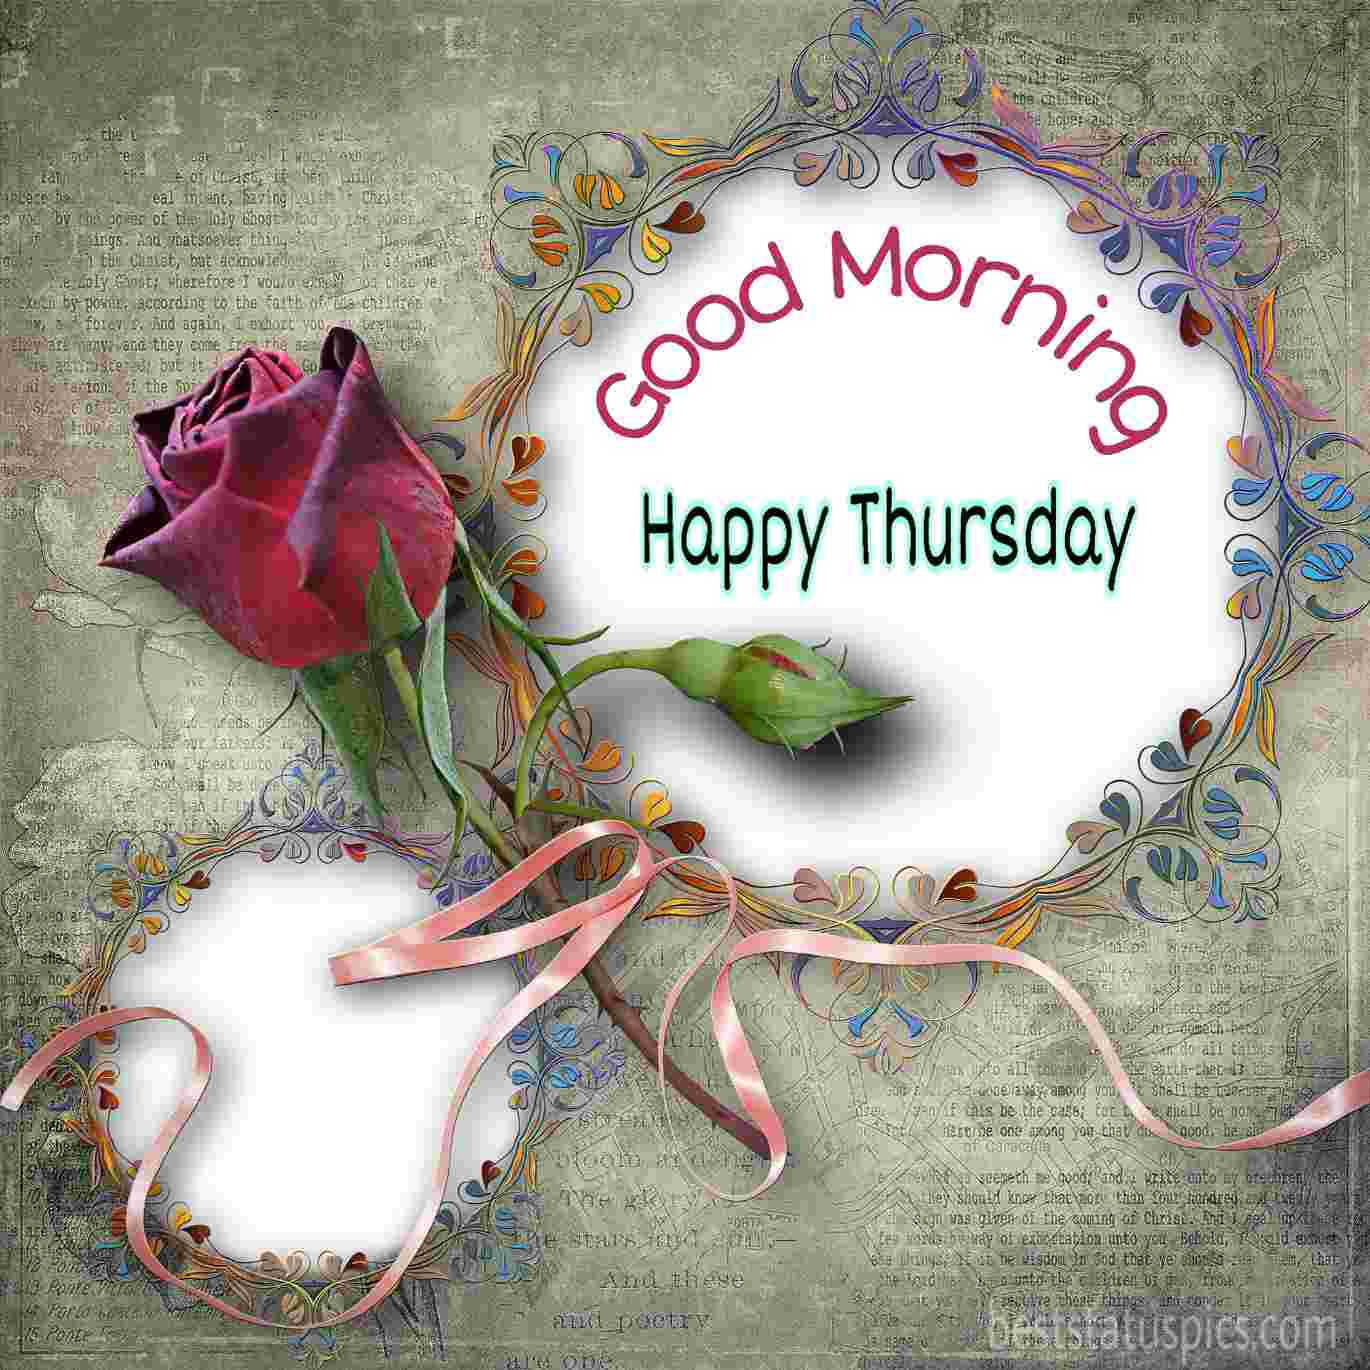 33+ Good Morning Happy Thursday Images, Wishes, Quotes - Best Status Pics